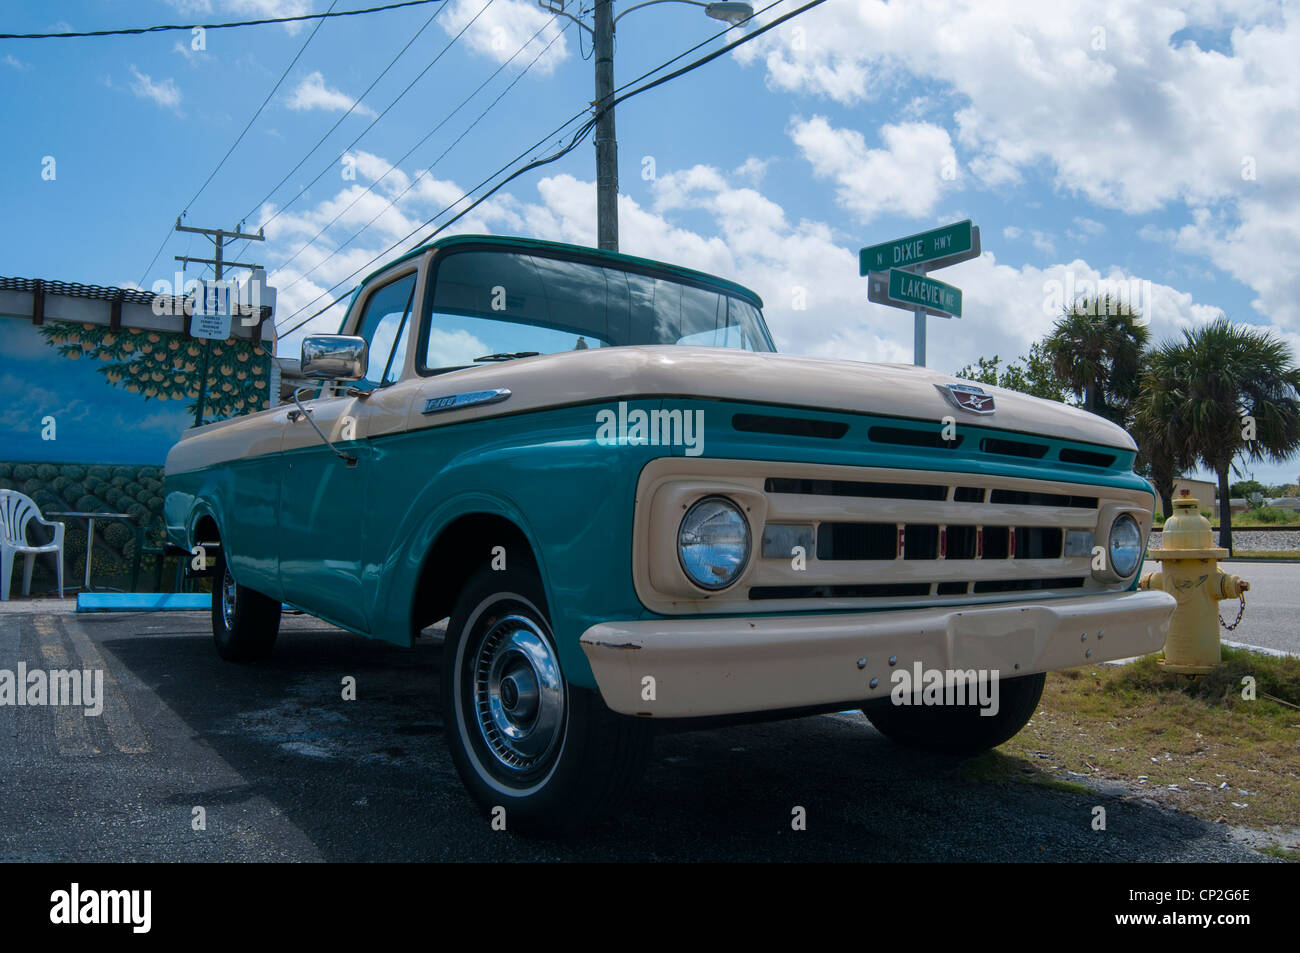 Old Ford pick-up truck in Florida Stock Photo, Royalty Free Image ...